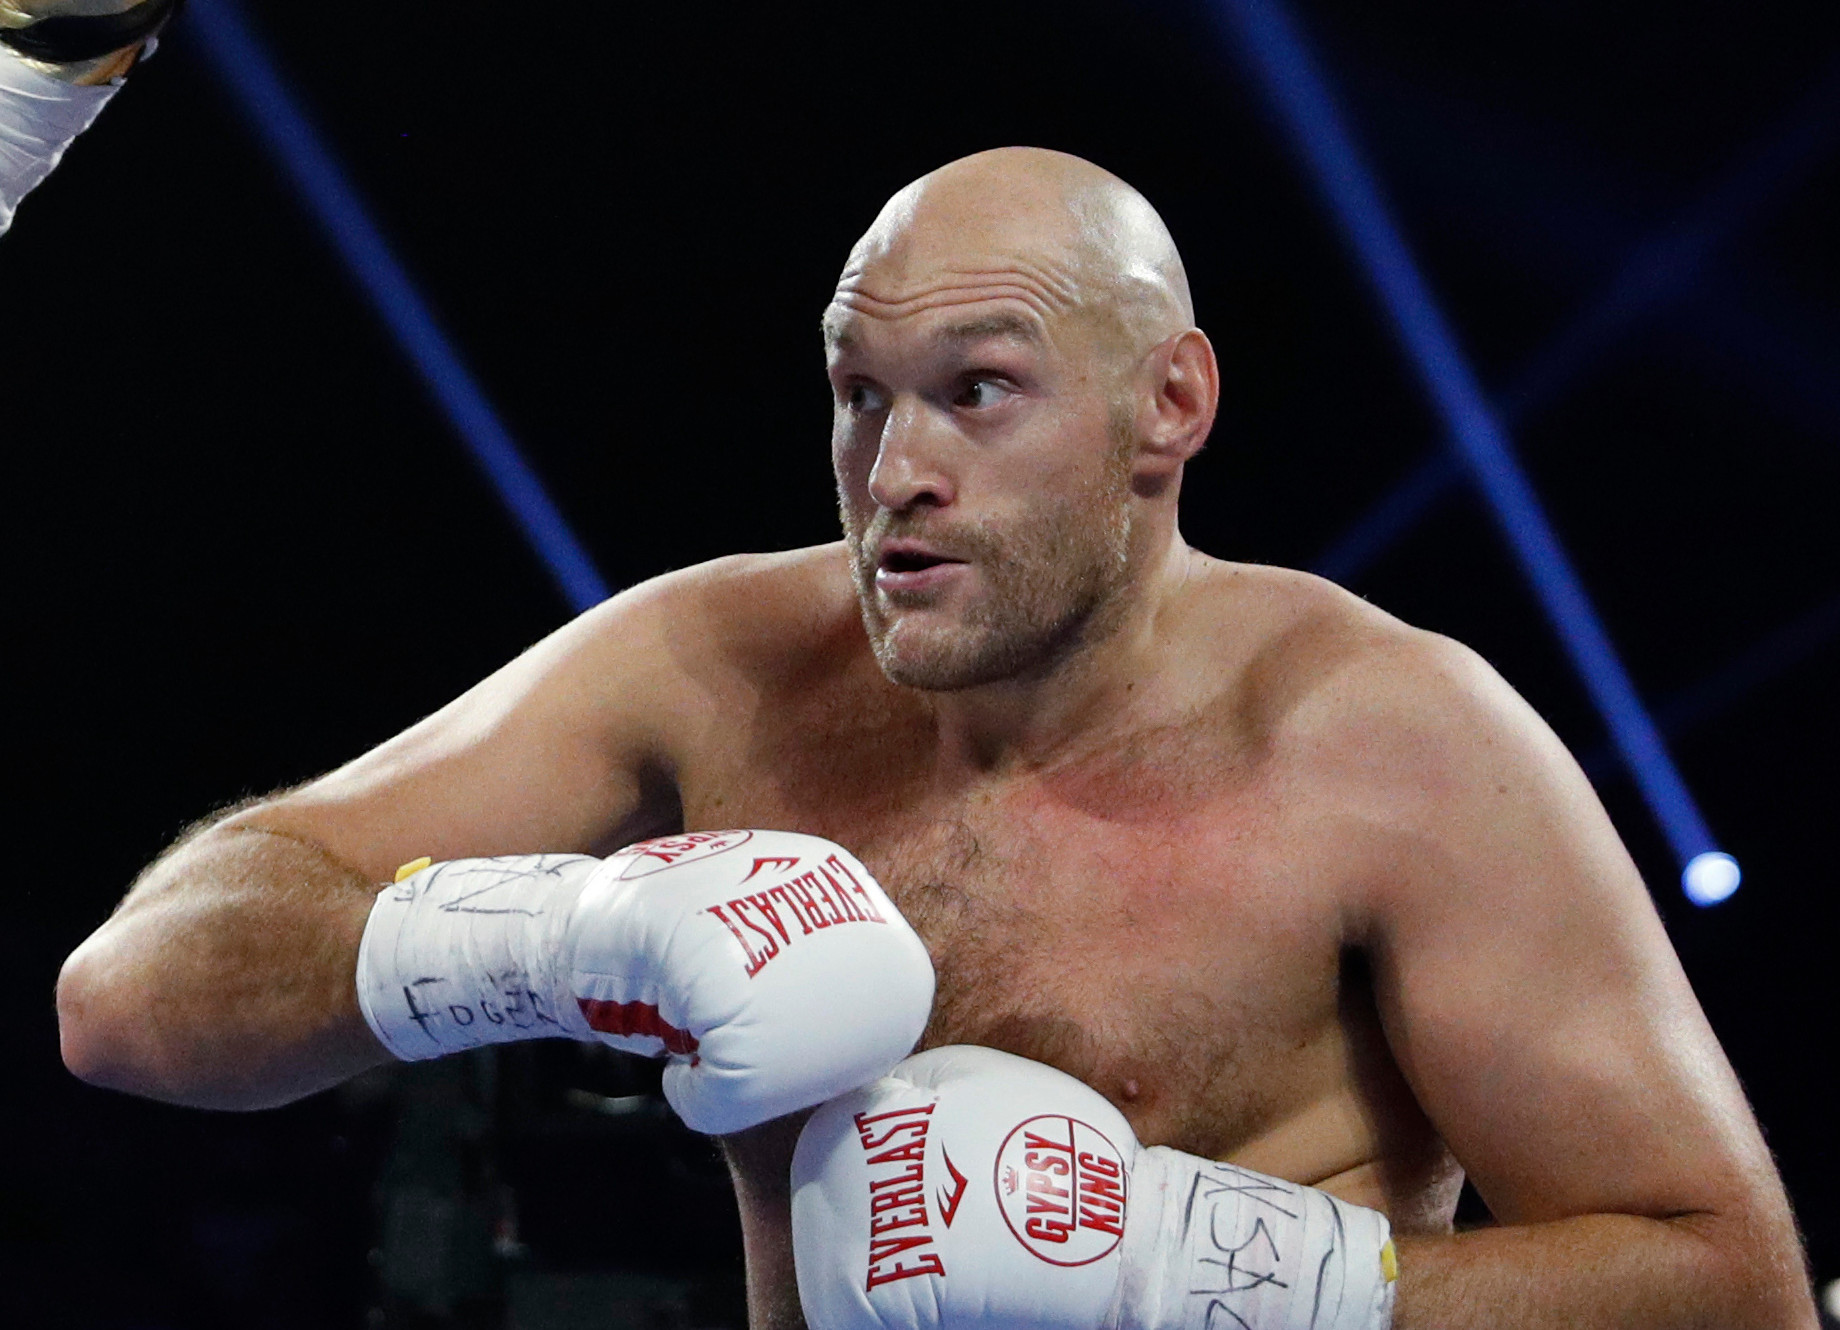 This week Tyson Fury claimed that he masturbates seven times a day to keep his testosterone pumping